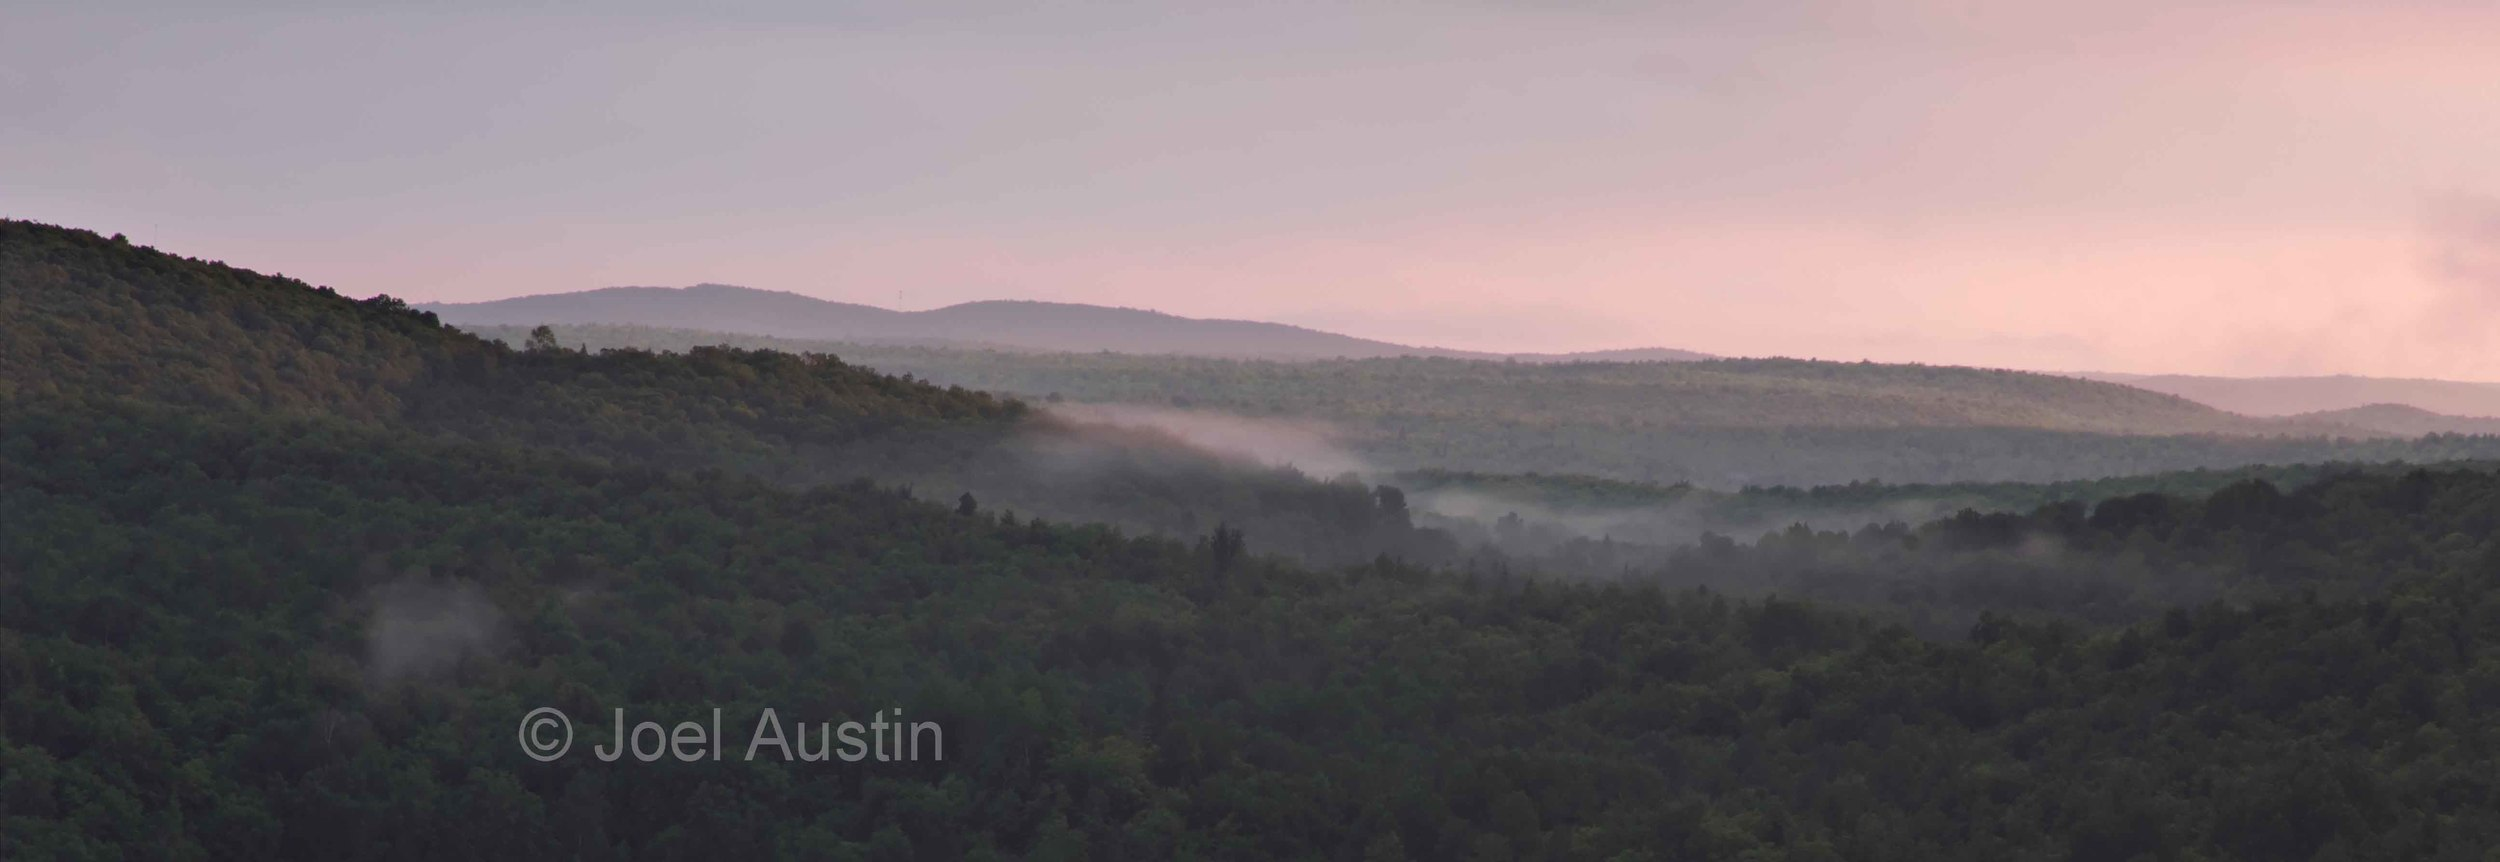 Misty Sunset at Corrigan's Lookout